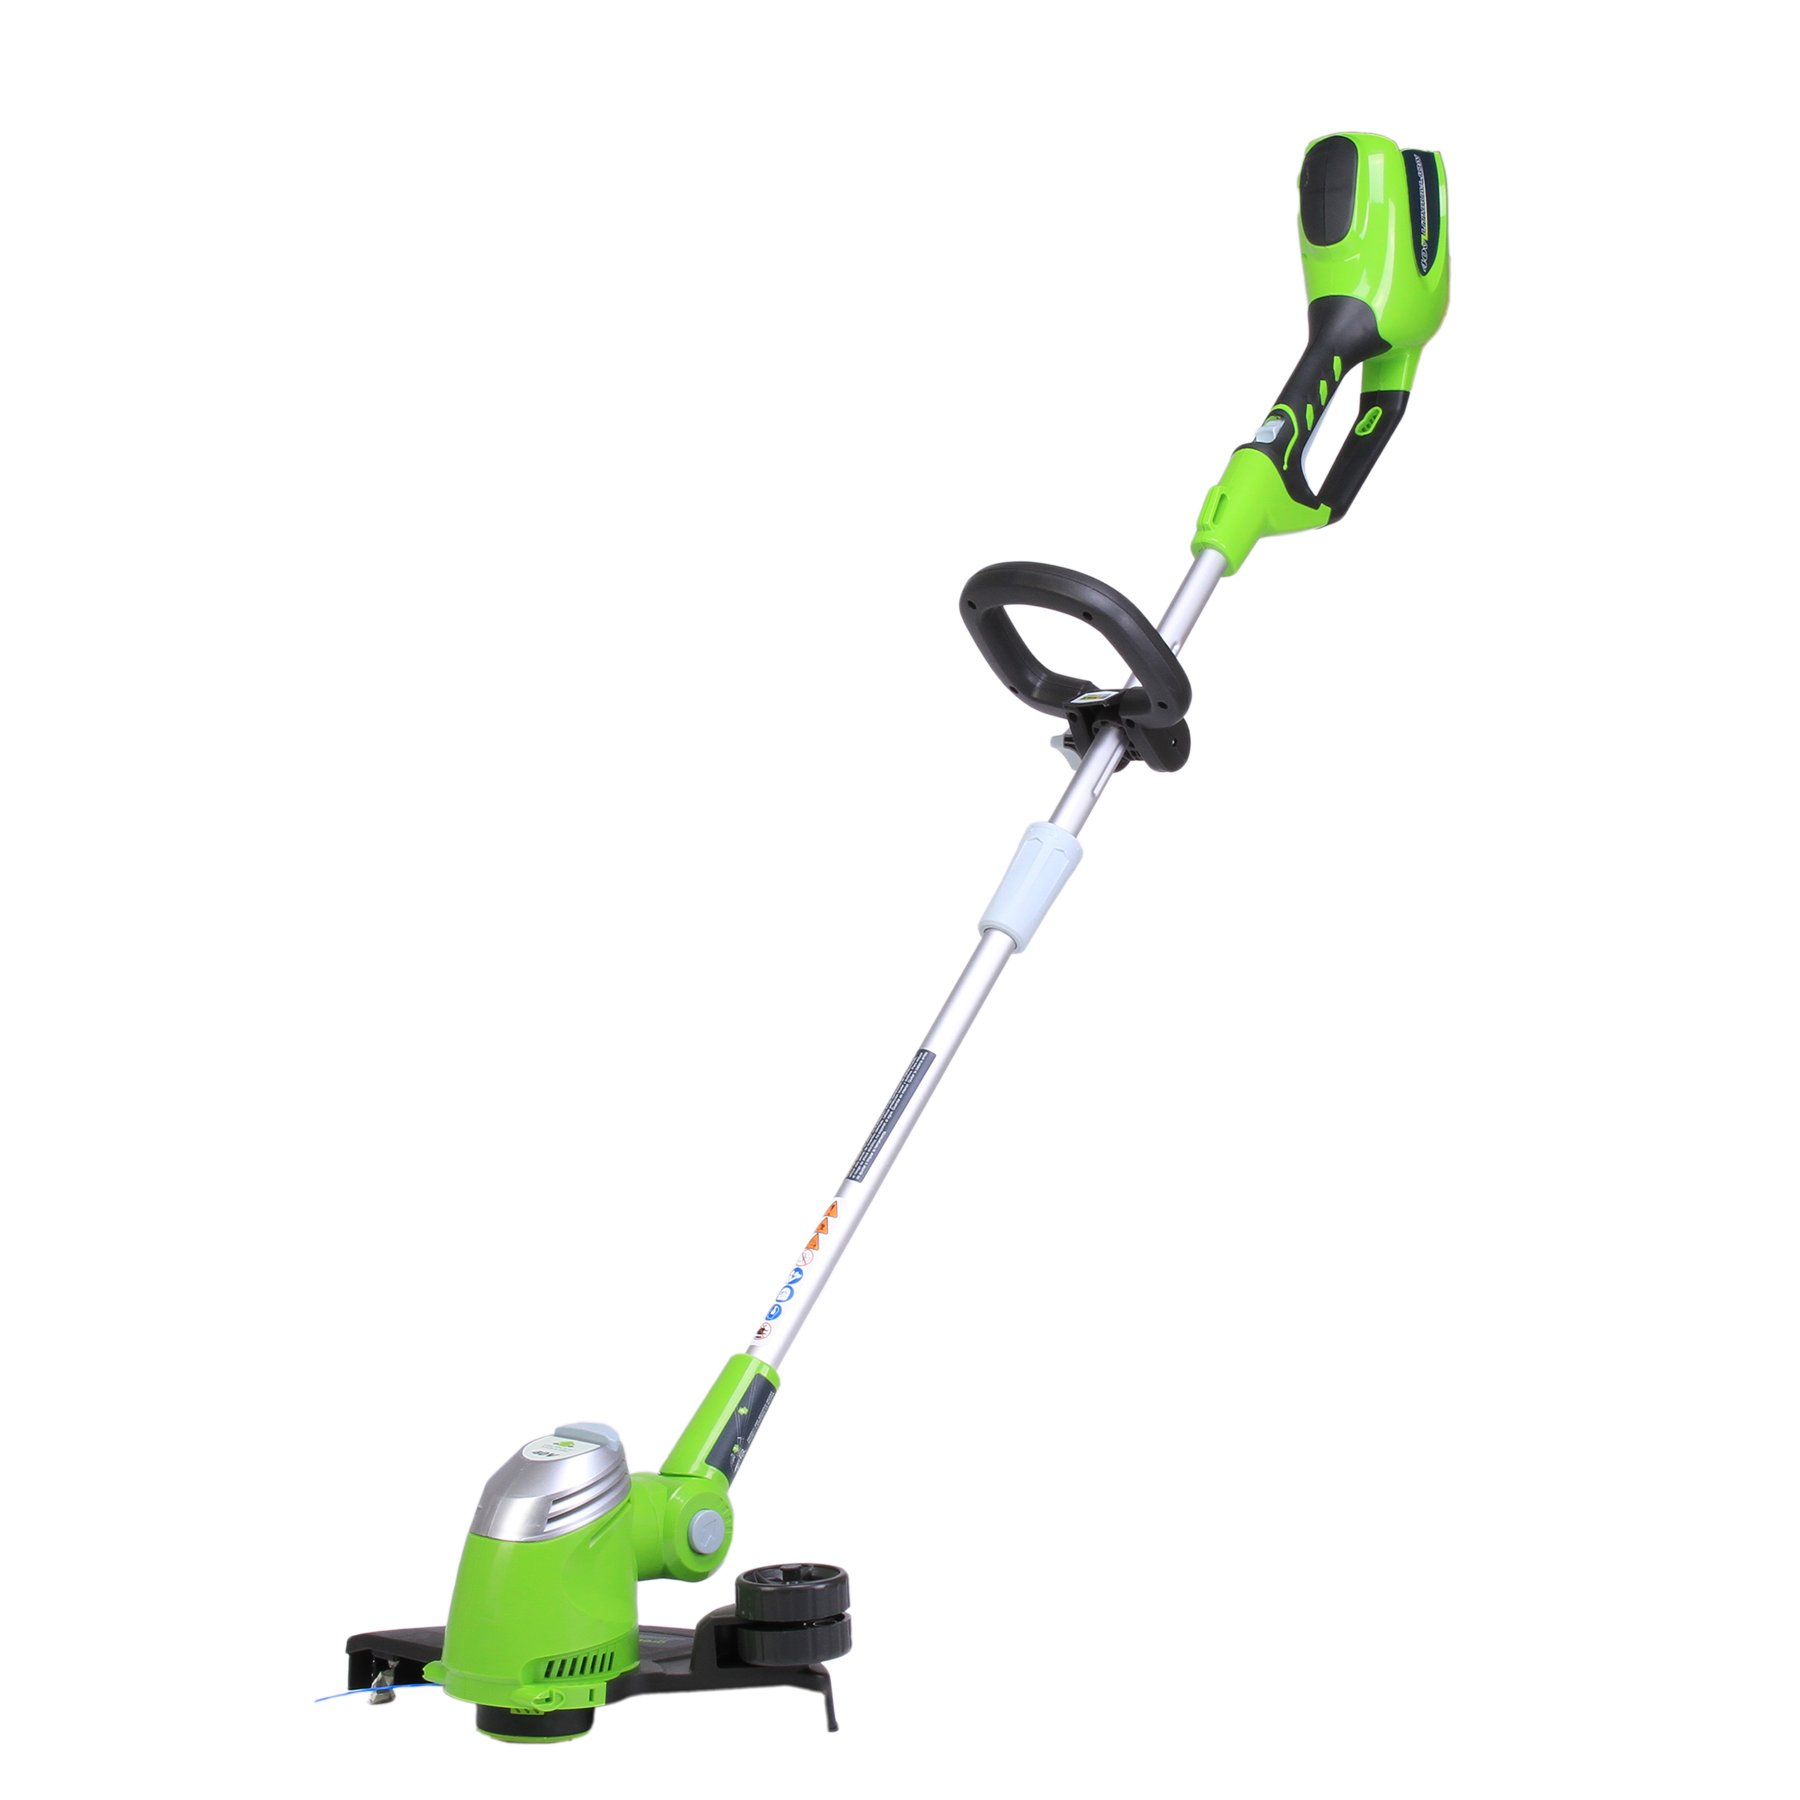 Greenworks 13-Inch 40V Cordless String trimmer/Edger, Battery Not Included 21332